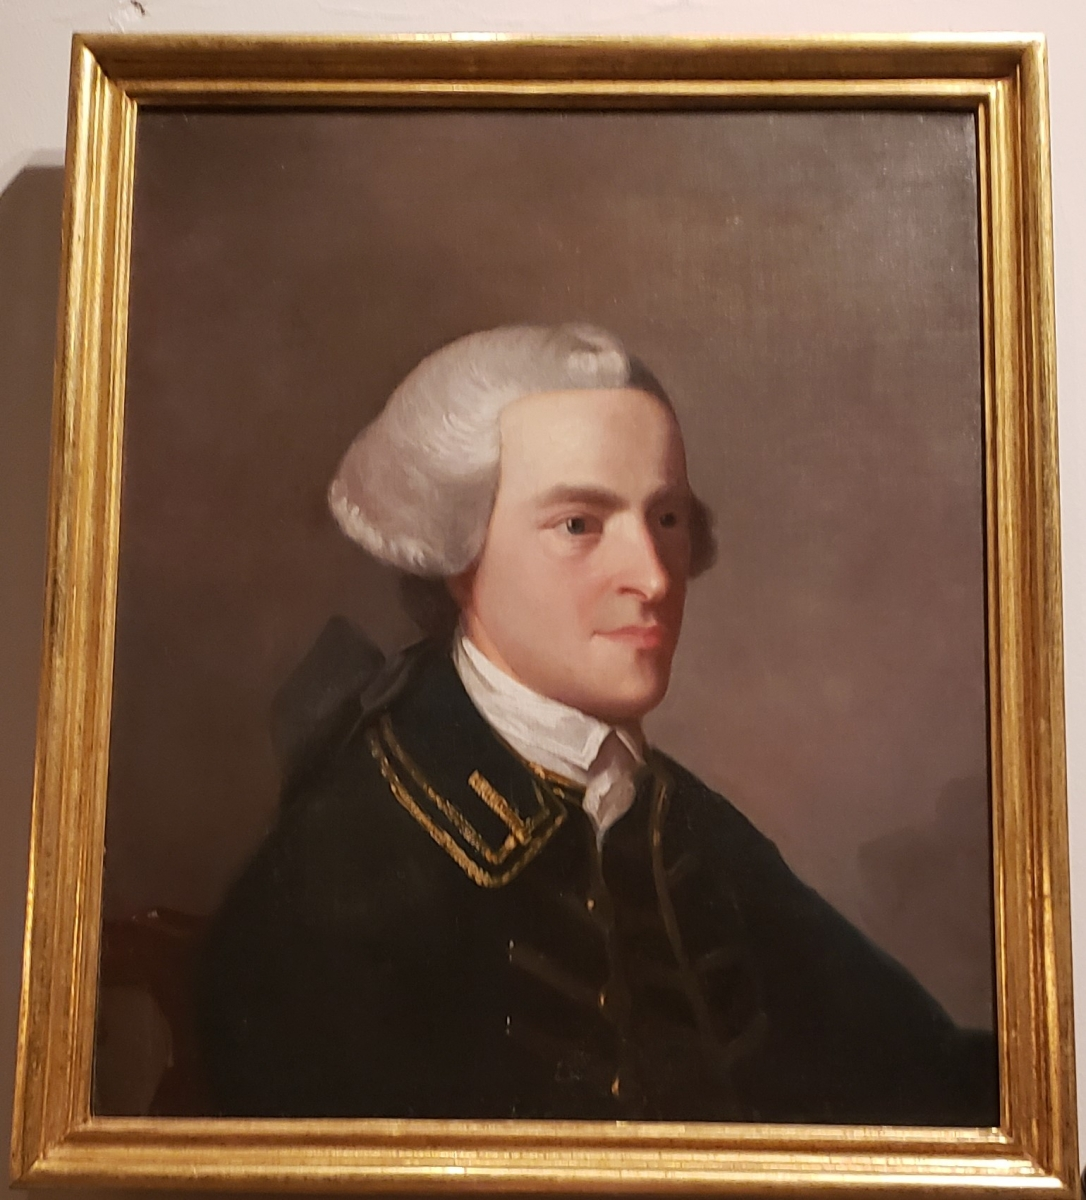 Portrait of John Hancock hanging in the Second Bank of the United States Portrait Gallery